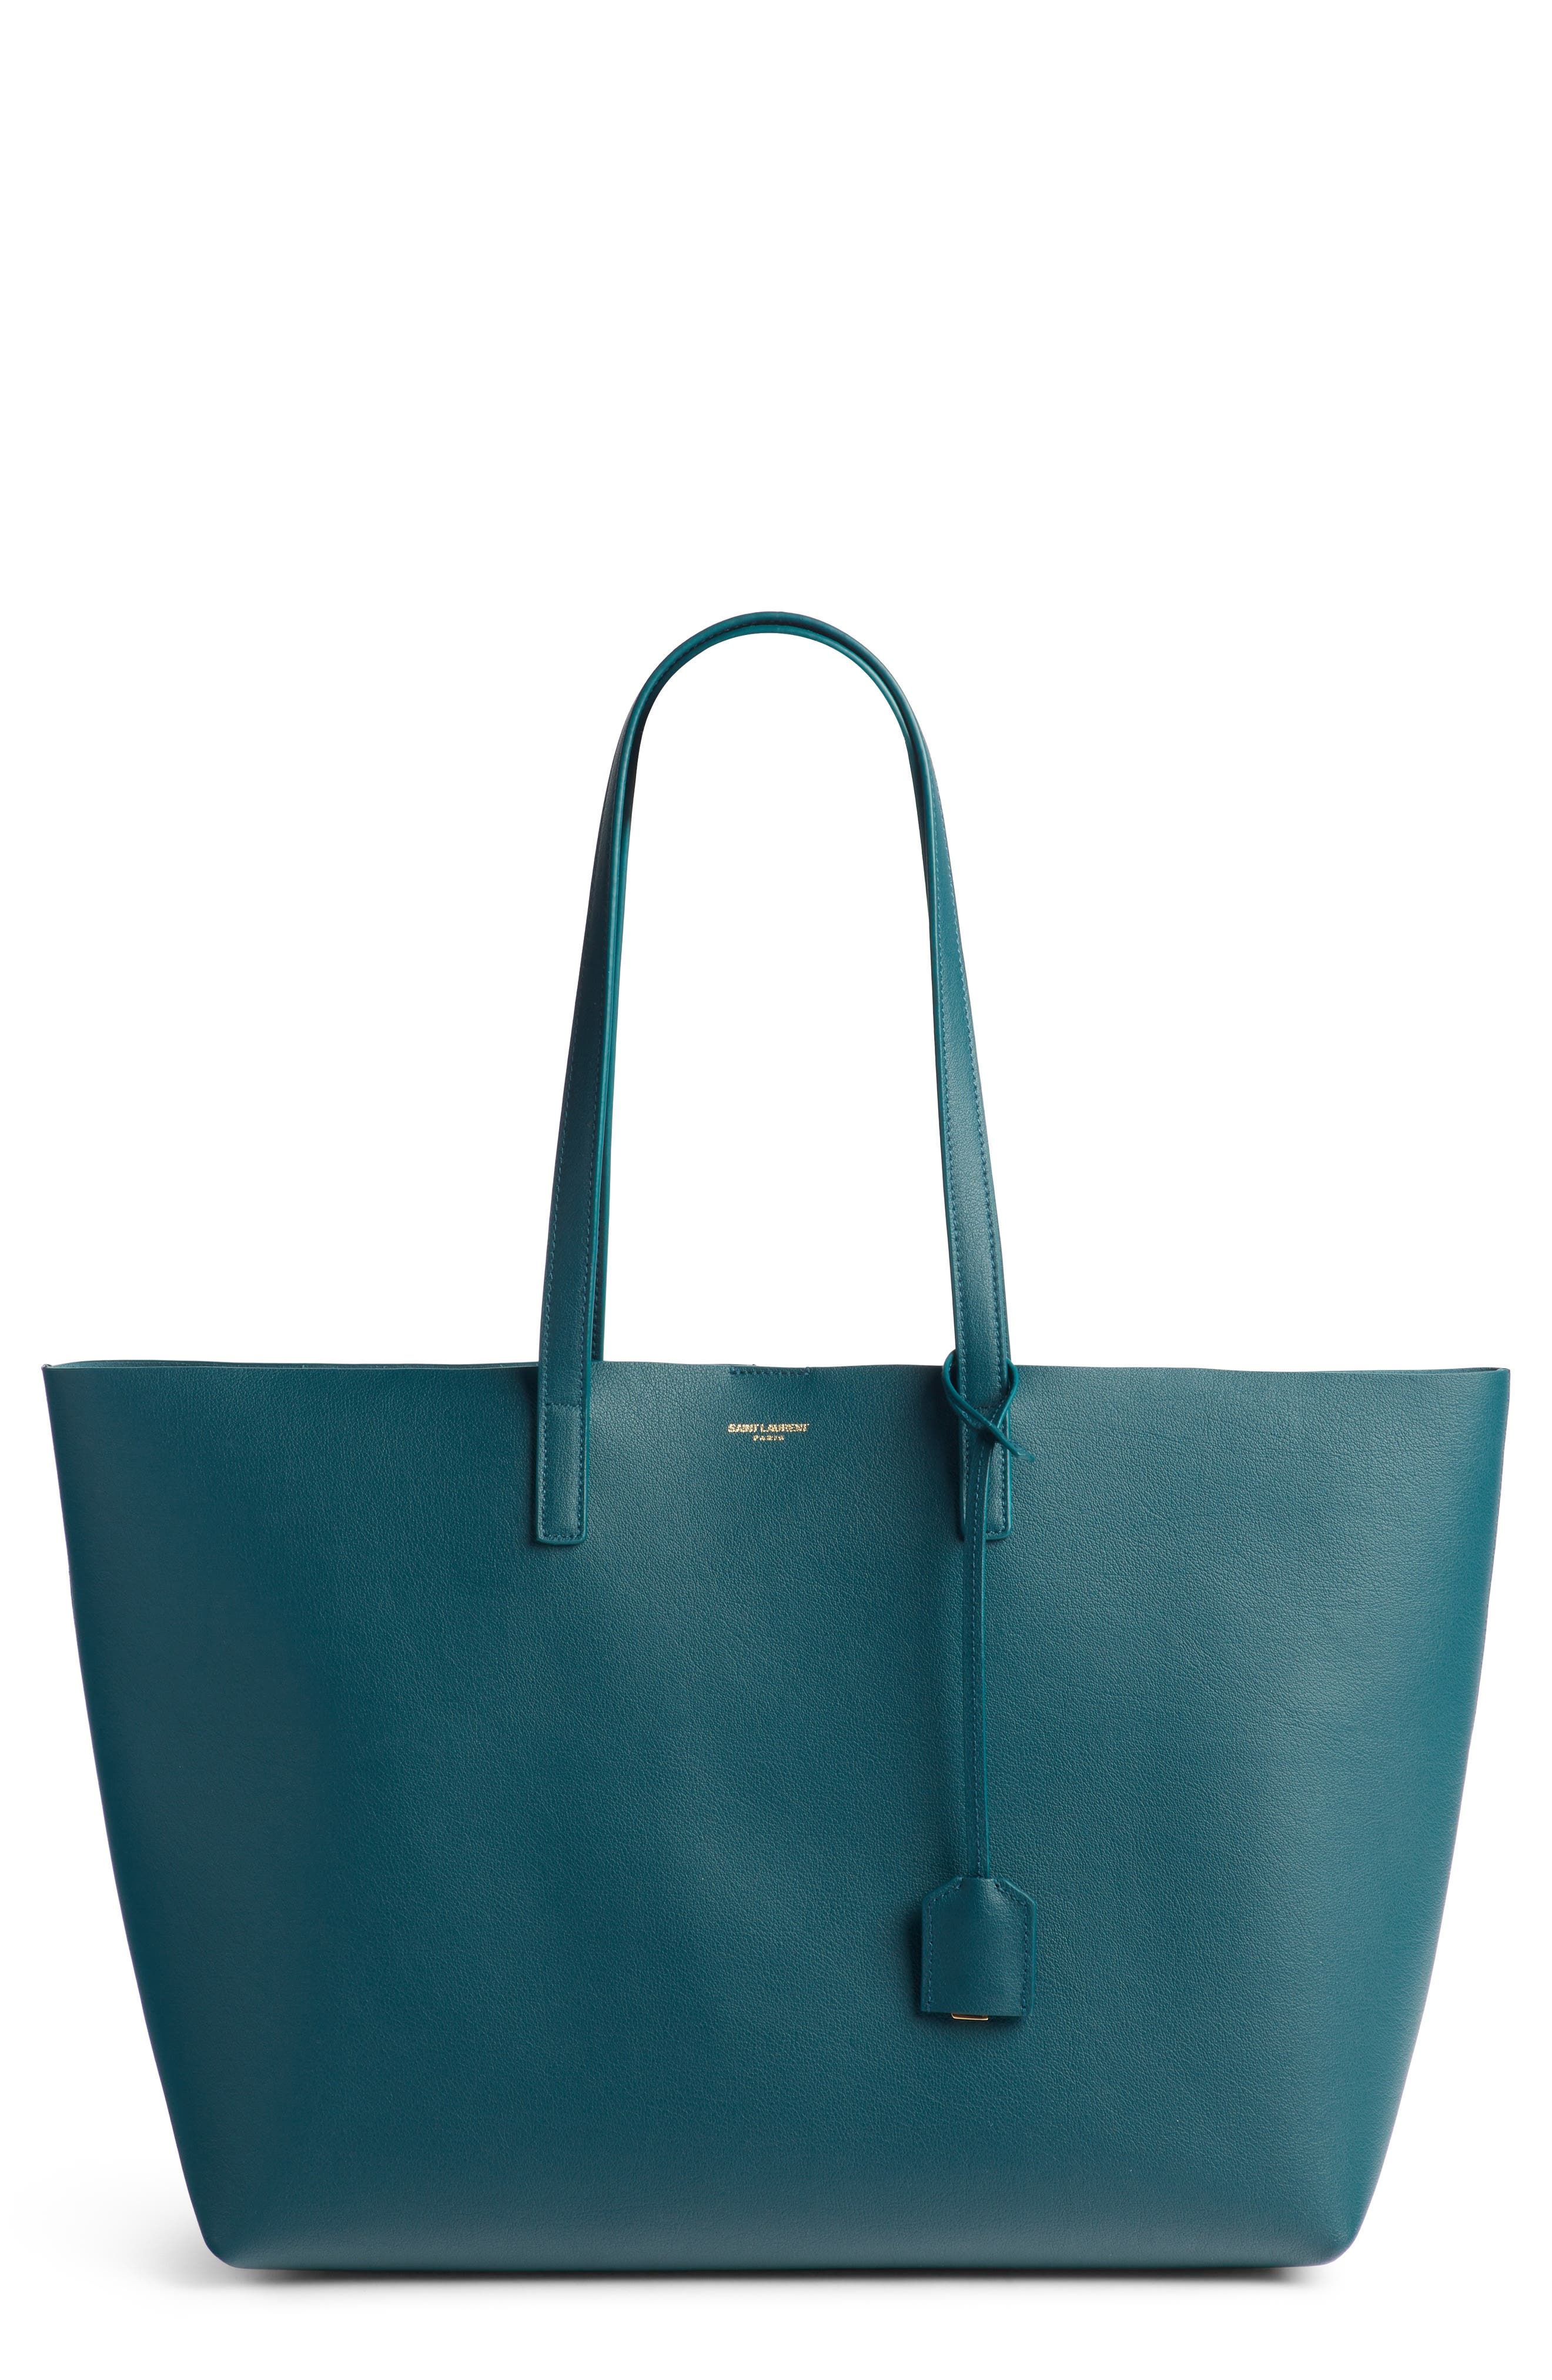 'Shopping' Leather Tote,                             Main thumbnail 1, color,                             Dark Turquoise